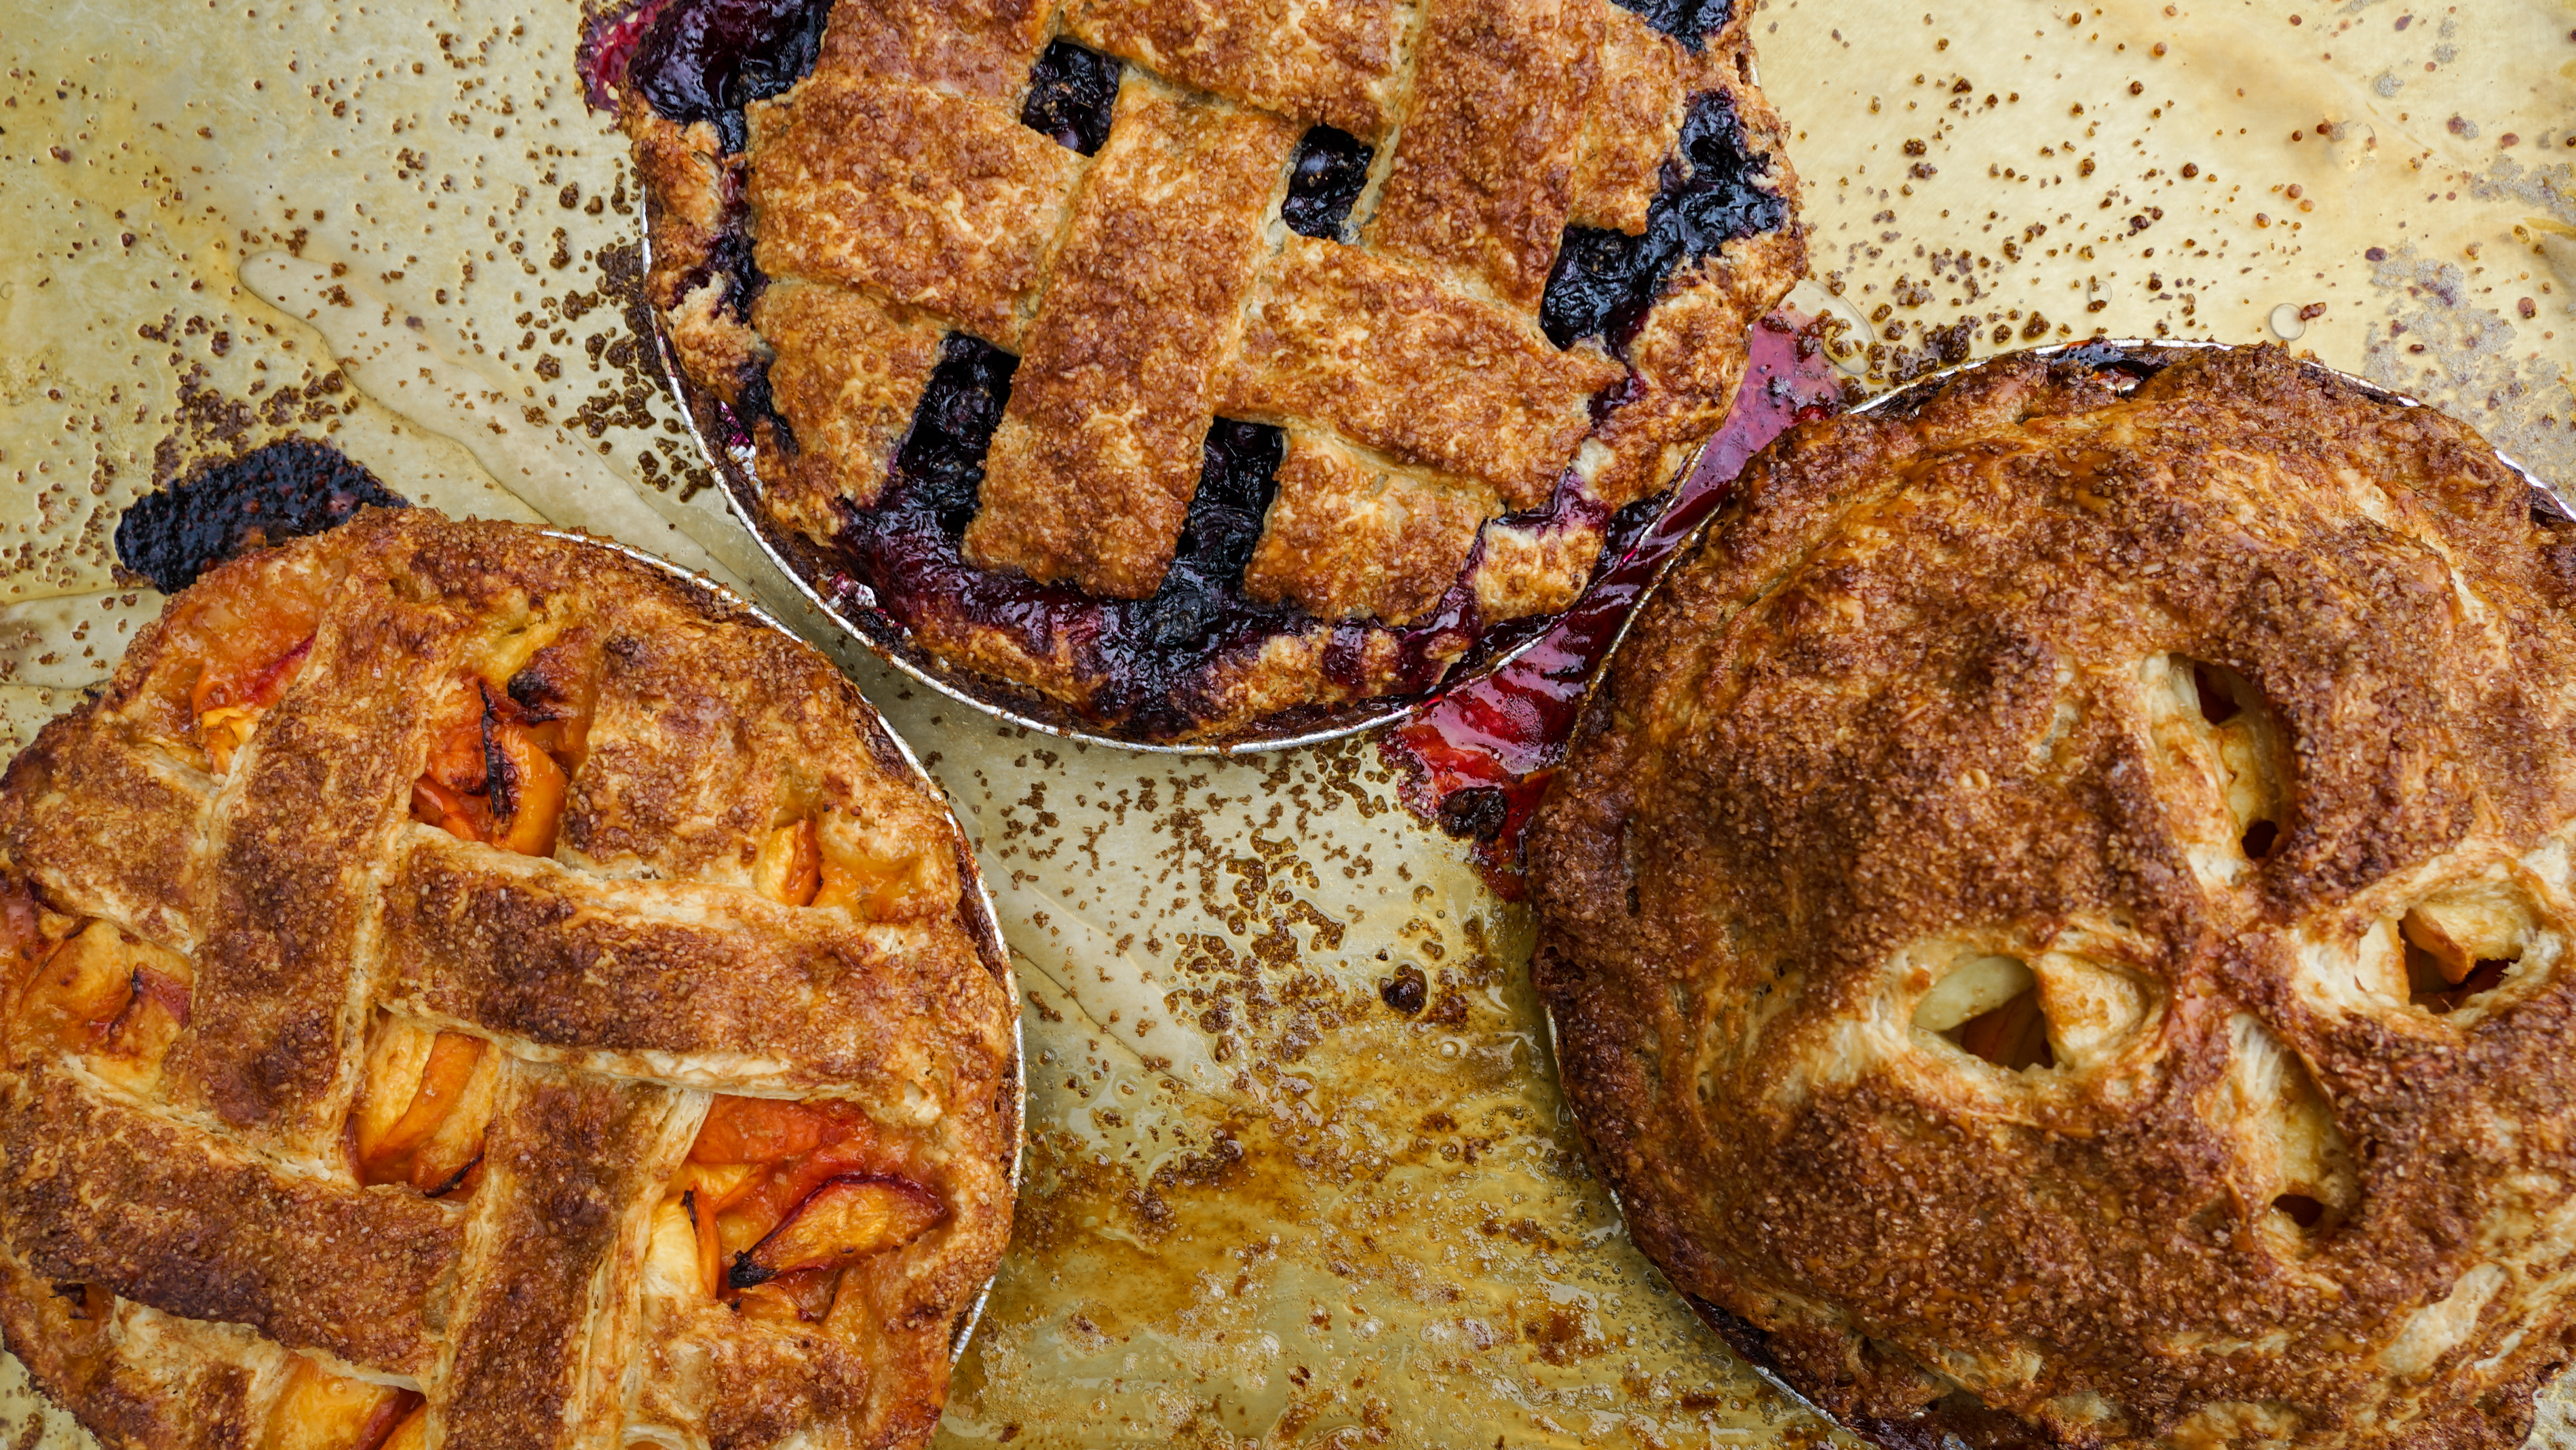 Three pies arranged and shot overhead with a baking sheet beneath.